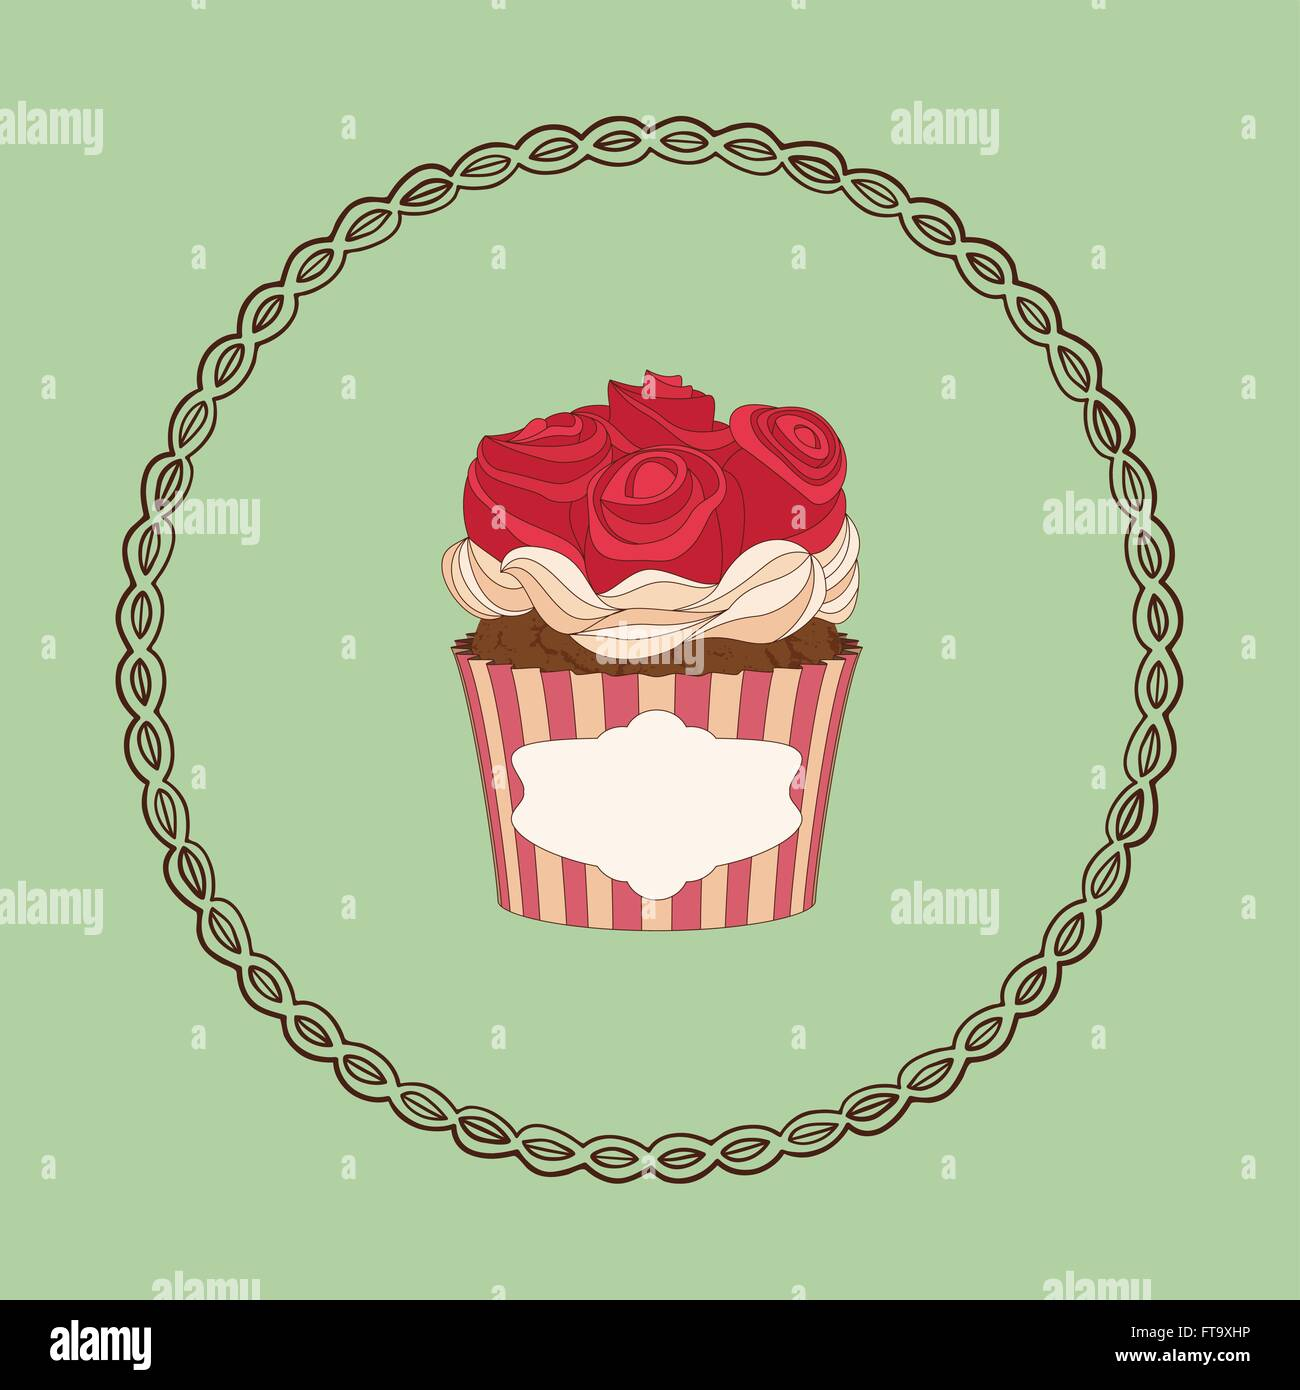 Cupcake And Doodle Frame Ideal For Posters Advertisements Stock